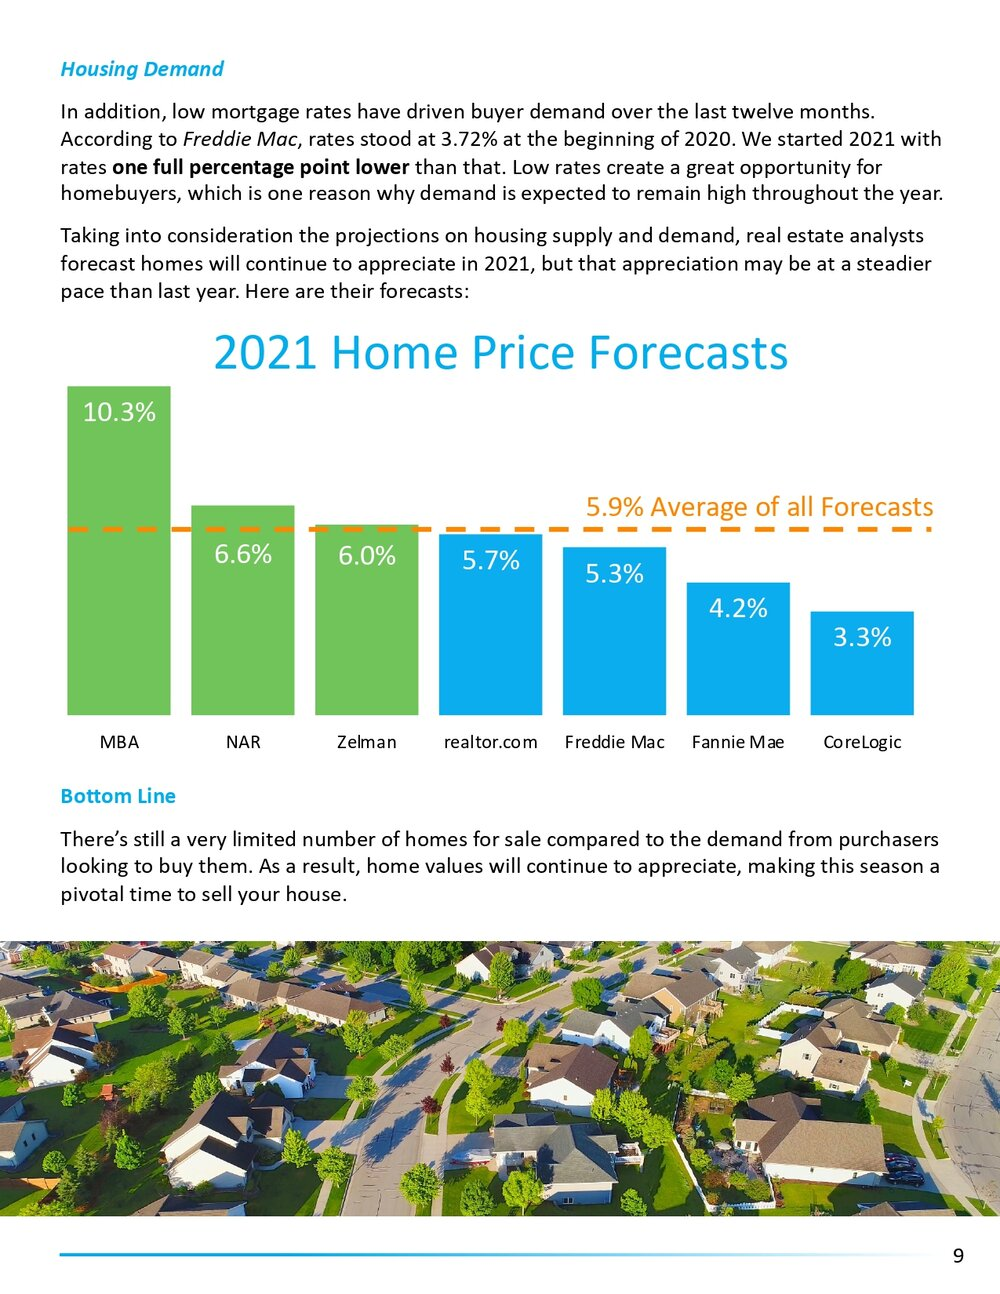 SellingYourHouseSpring2021_page-0009.jpg